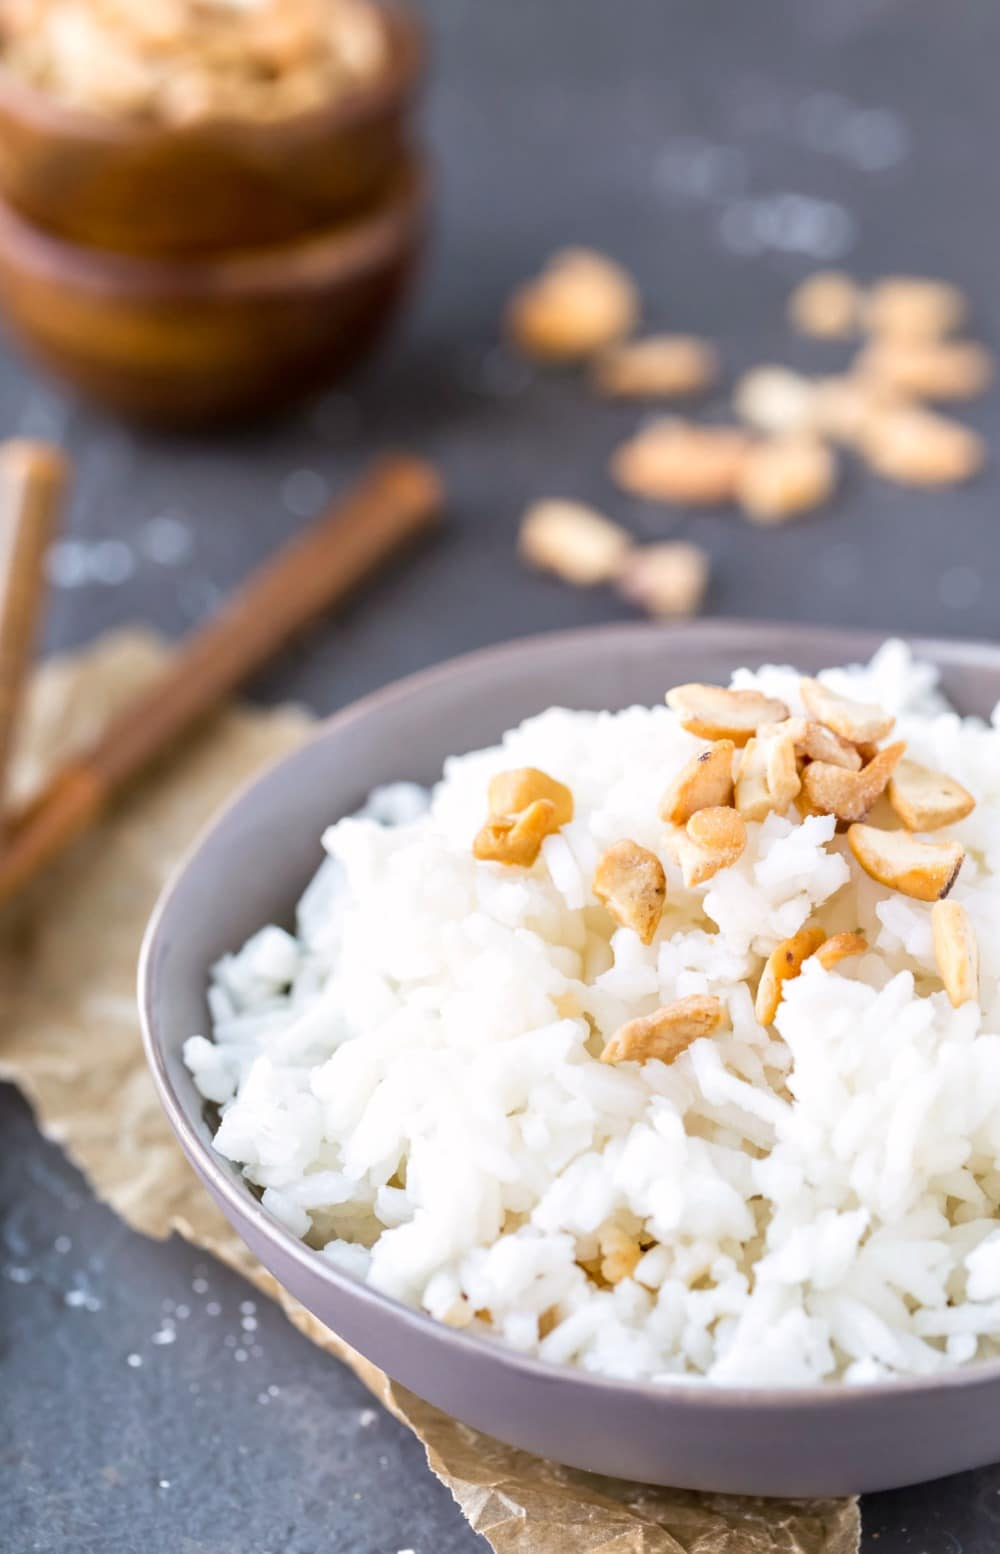 Coconut rice in a blue bowl topped with pieces of cashew